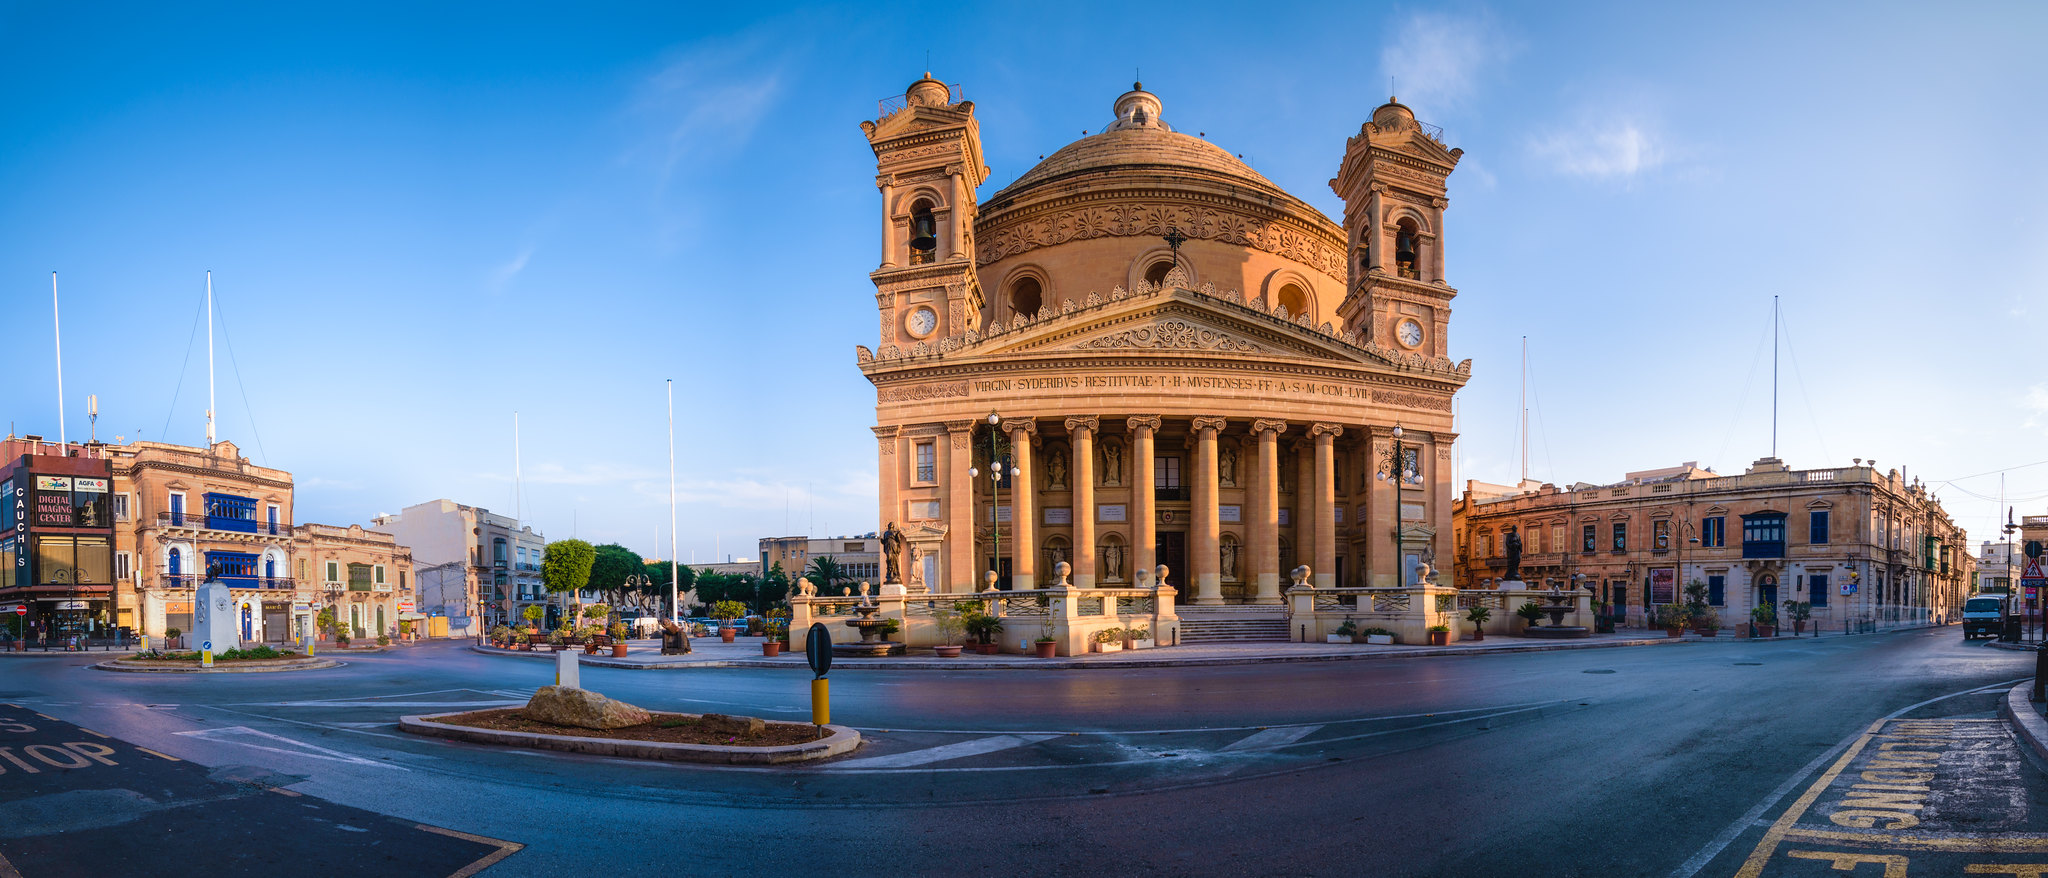 Panorama of the Mosta Piazza